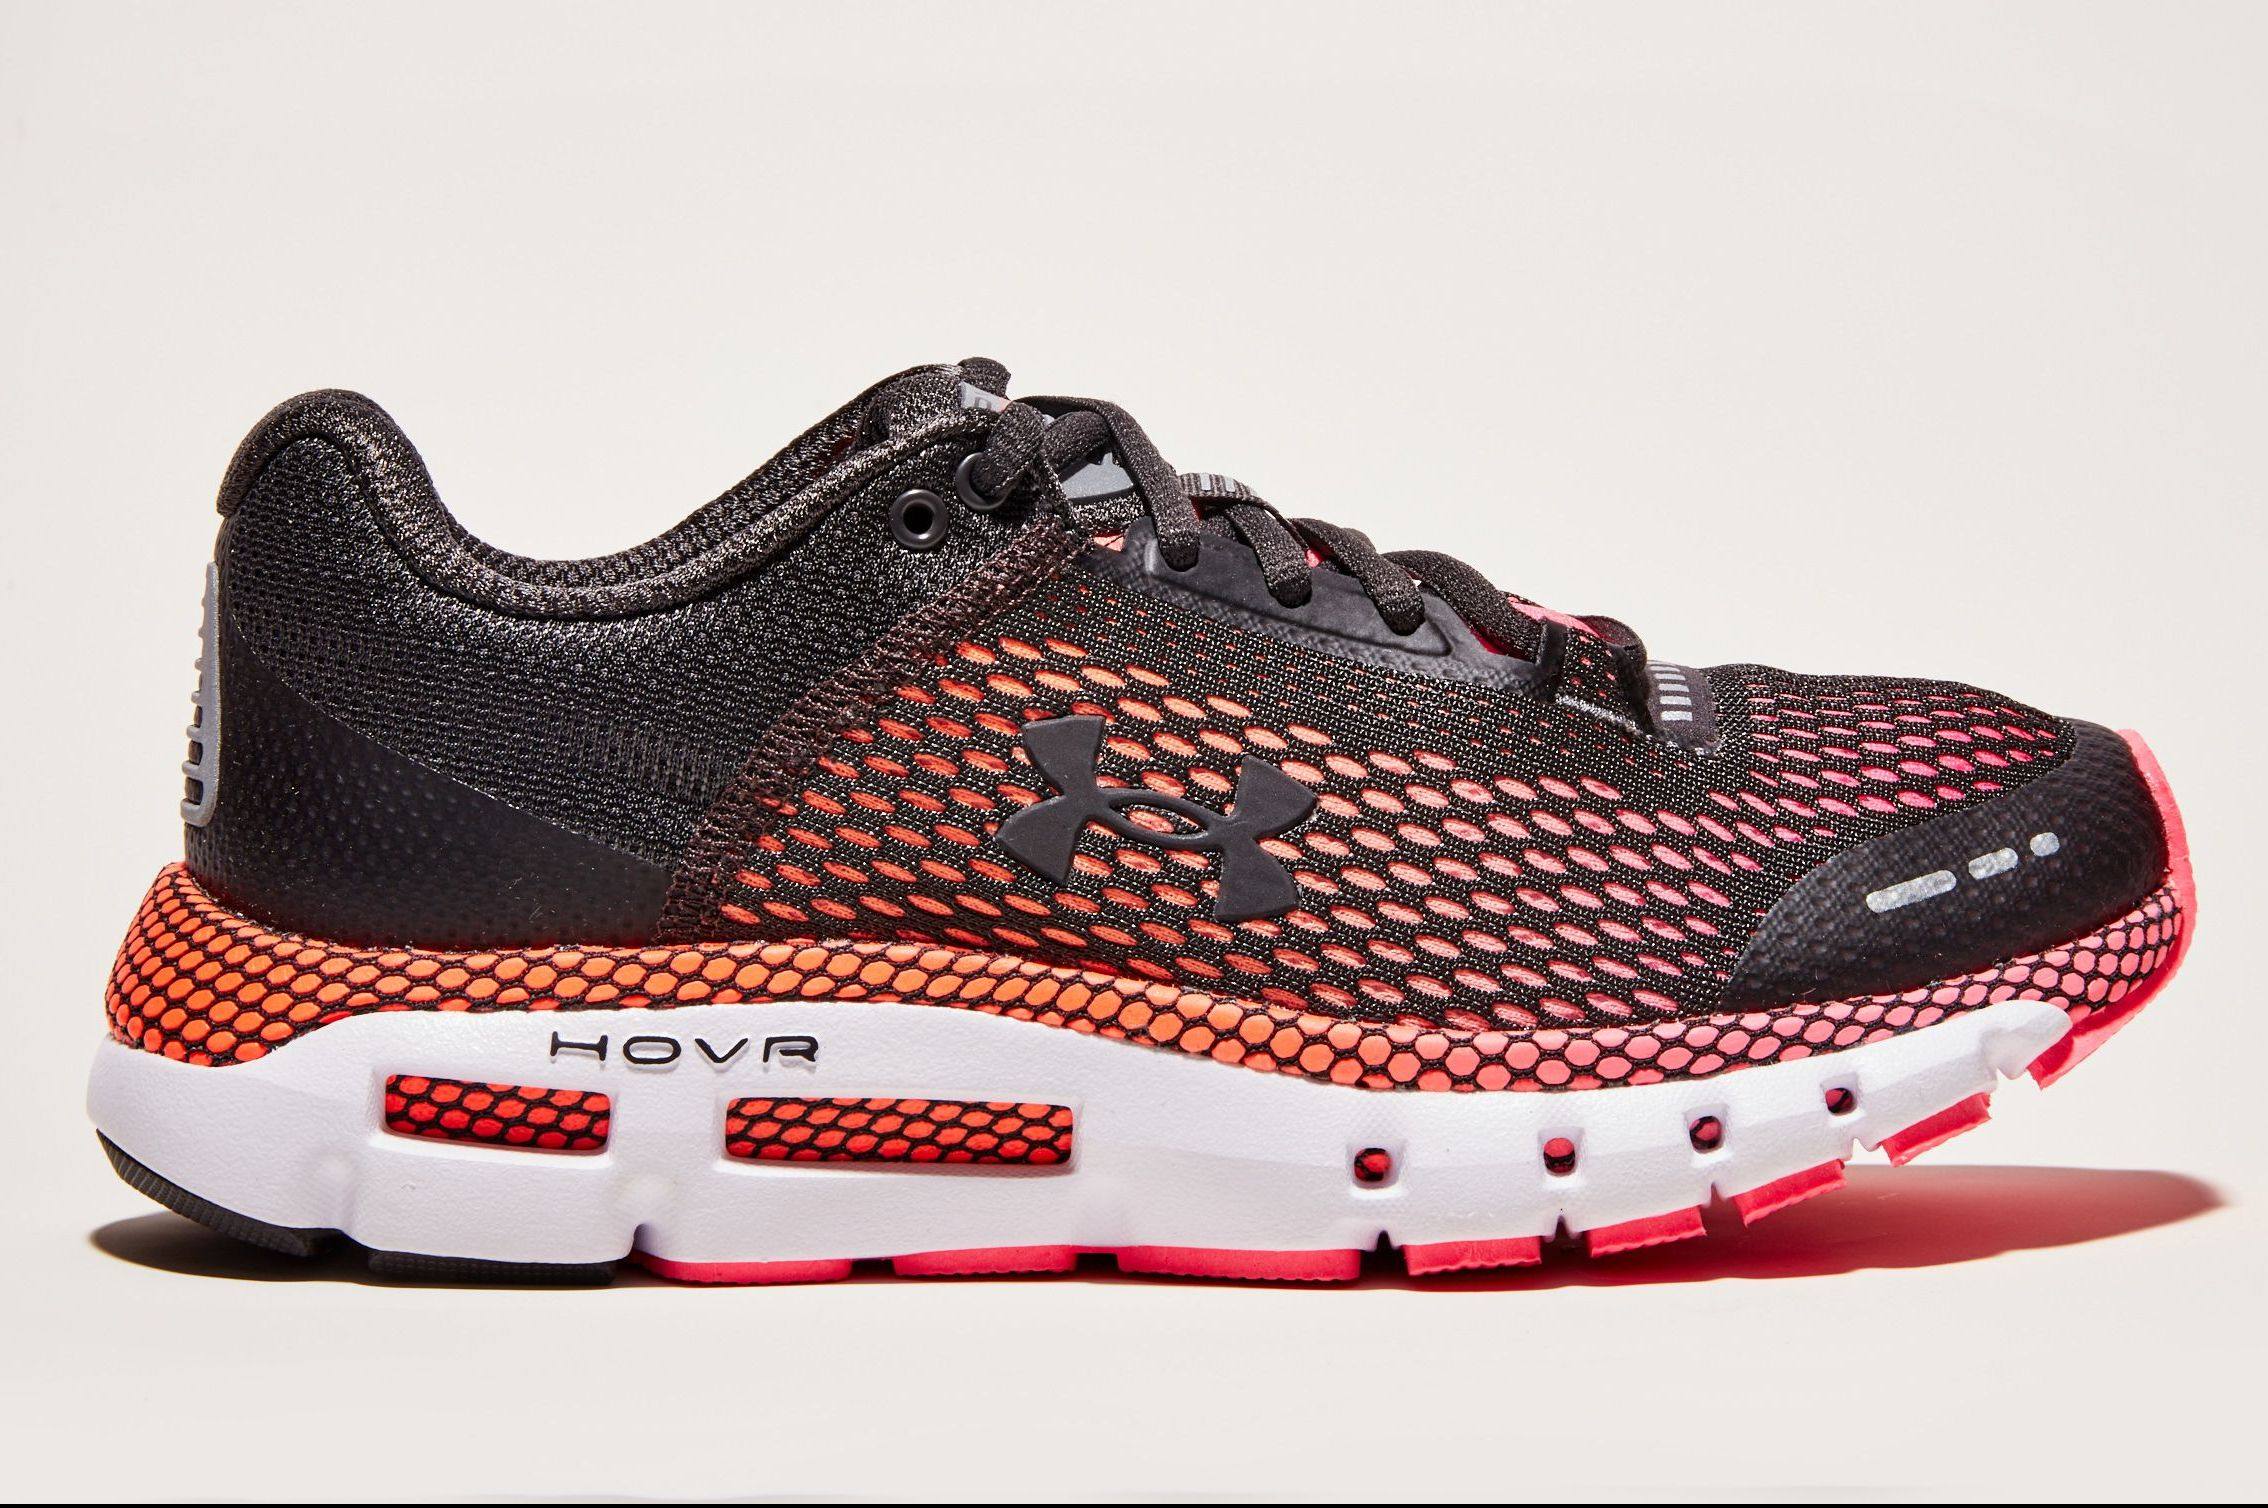 new arrival ce27d c5e46 Under Armour HOVR Infinite Review — Cushioned Running Shoes